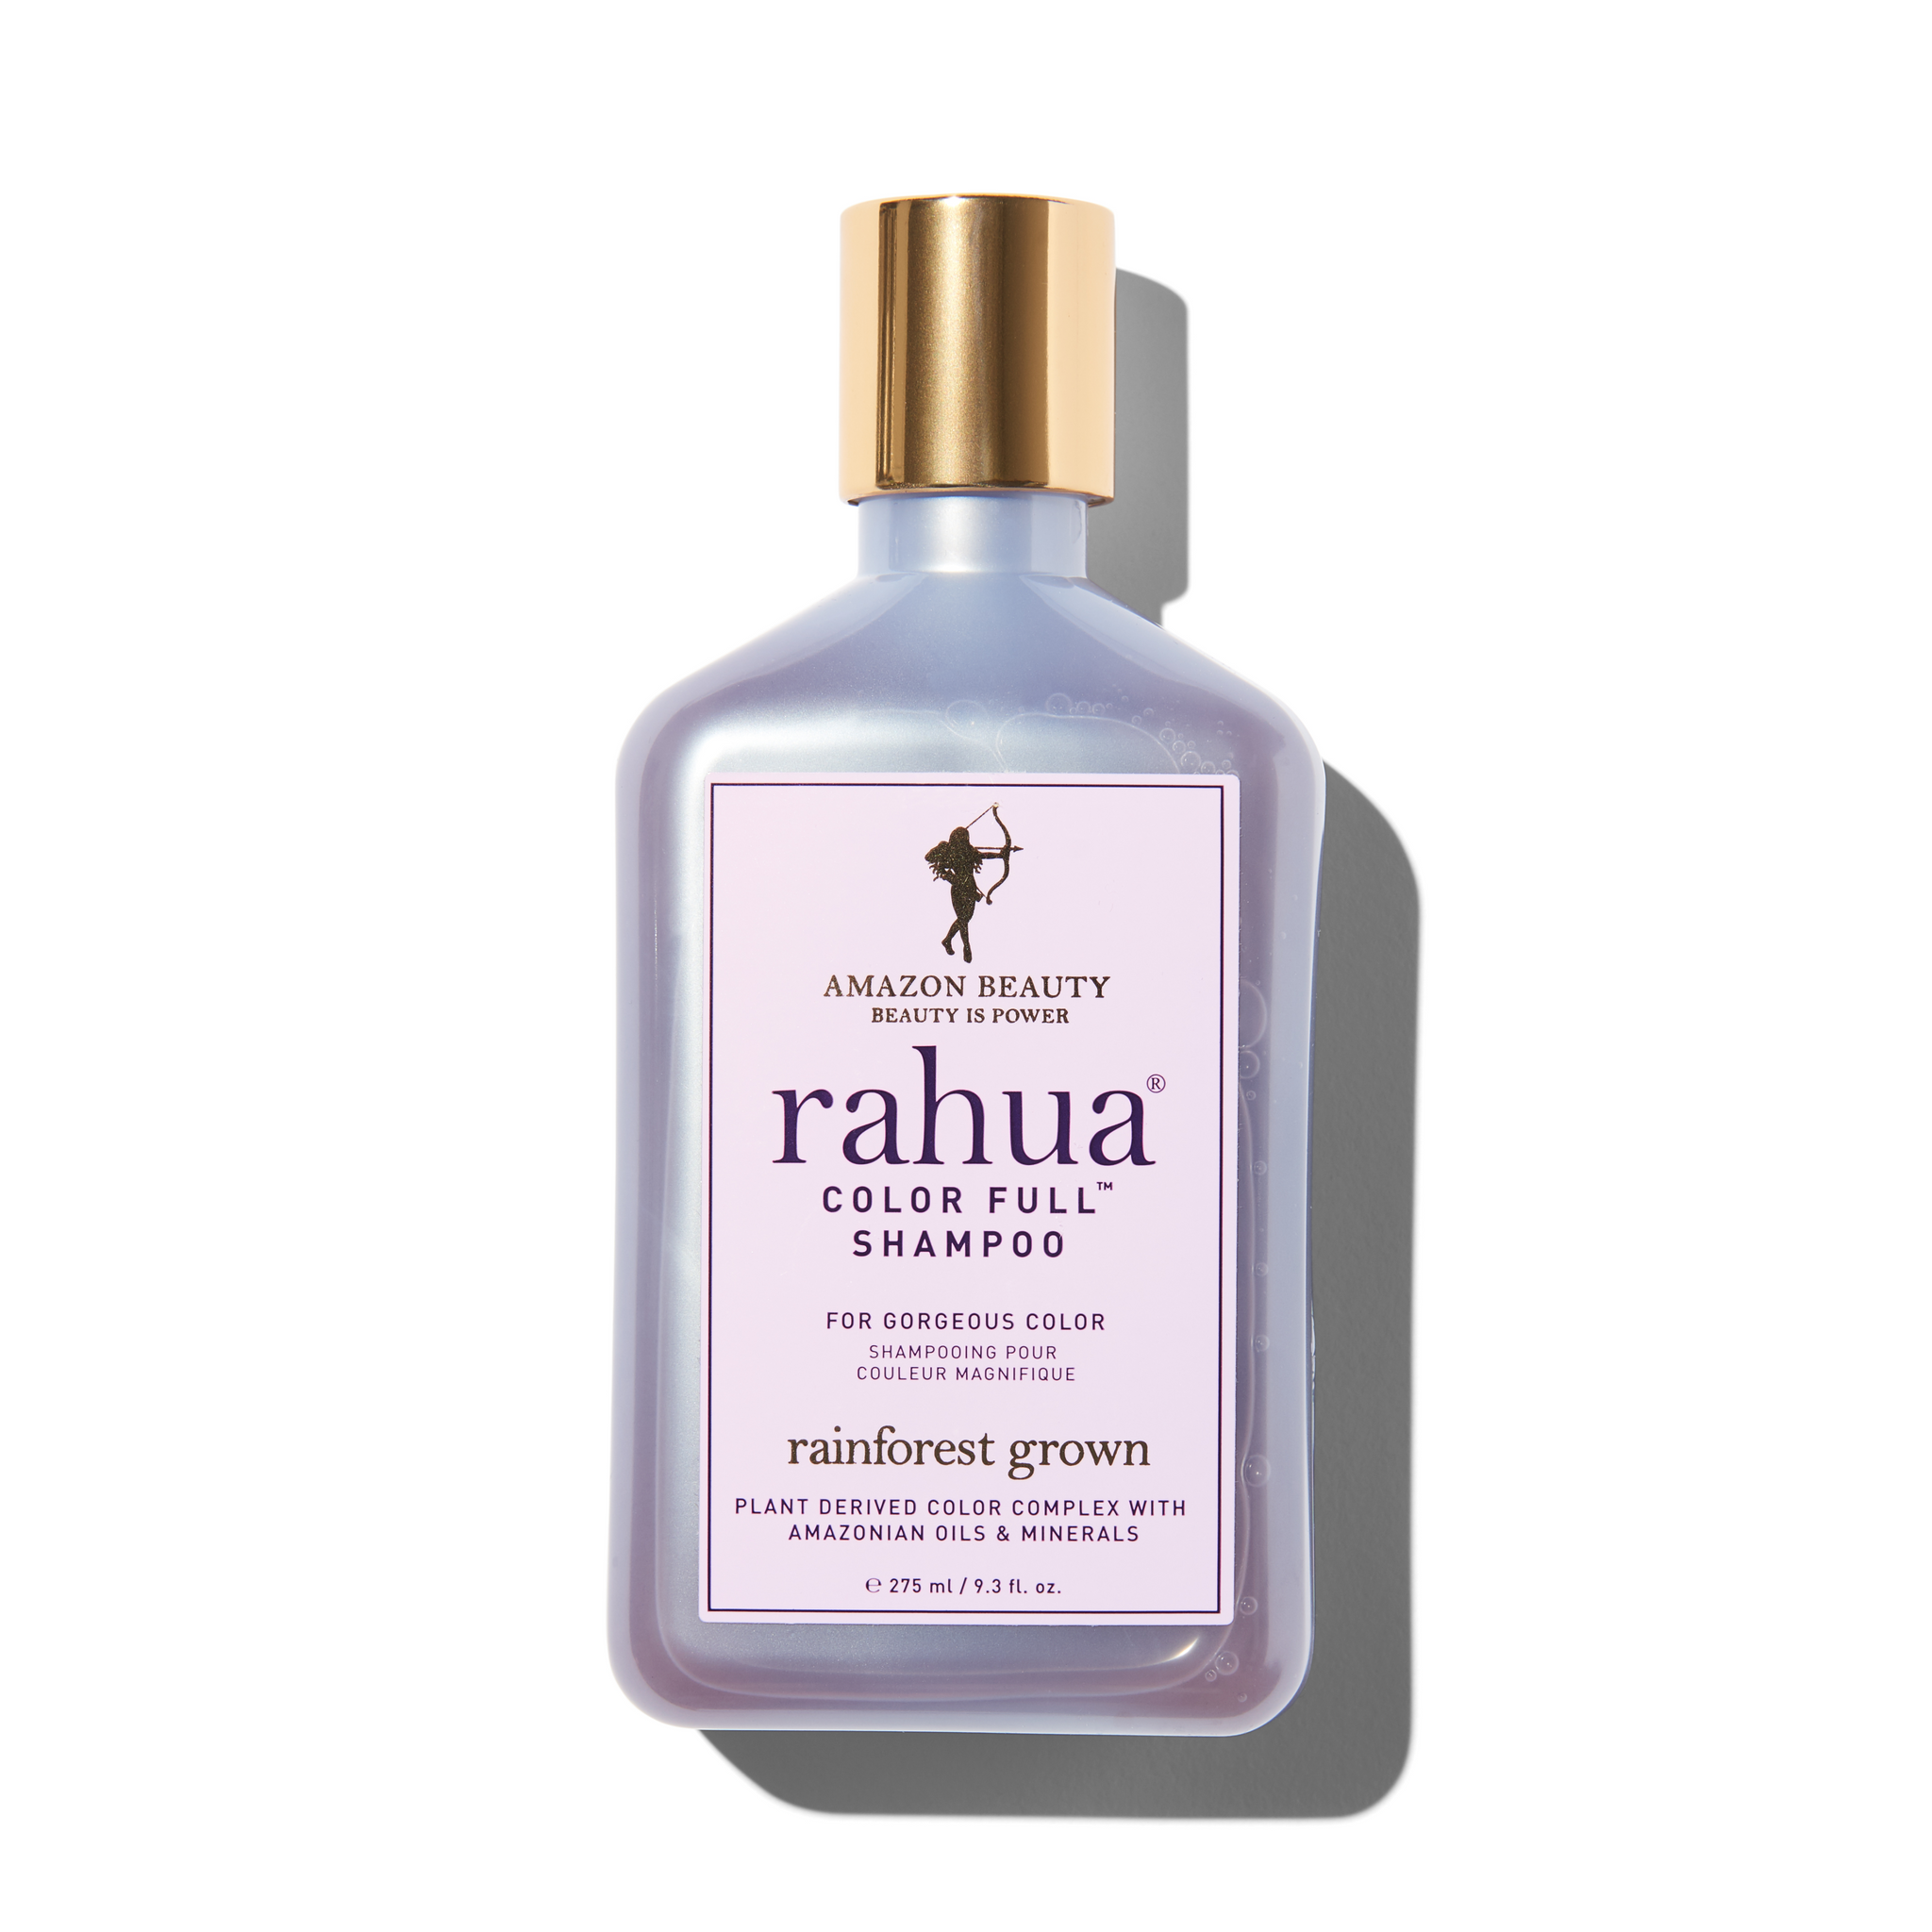 859528006458 - Rahua Color Full Shampoo